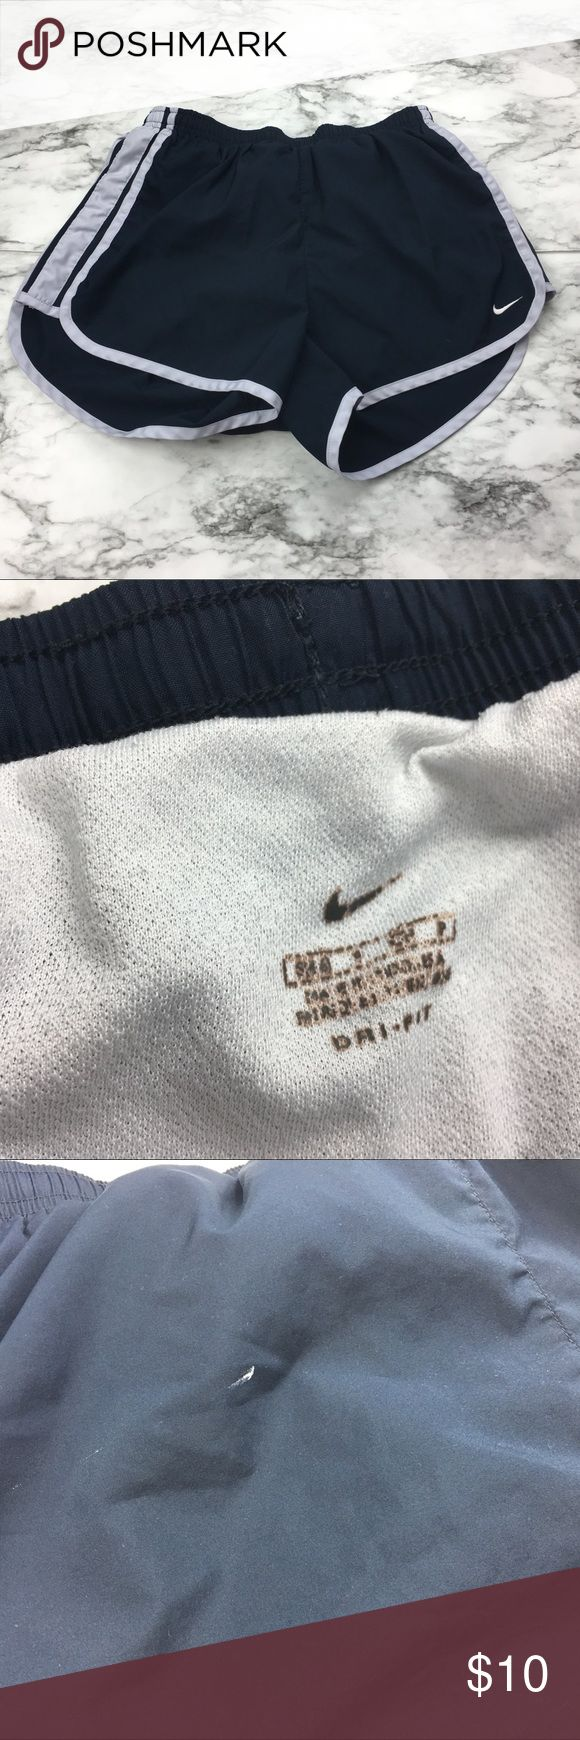 NIKE women's navy shorts Excellent worn condition, no holes. Small white stain on the back. Navy blue. Size: small Nike Shorts